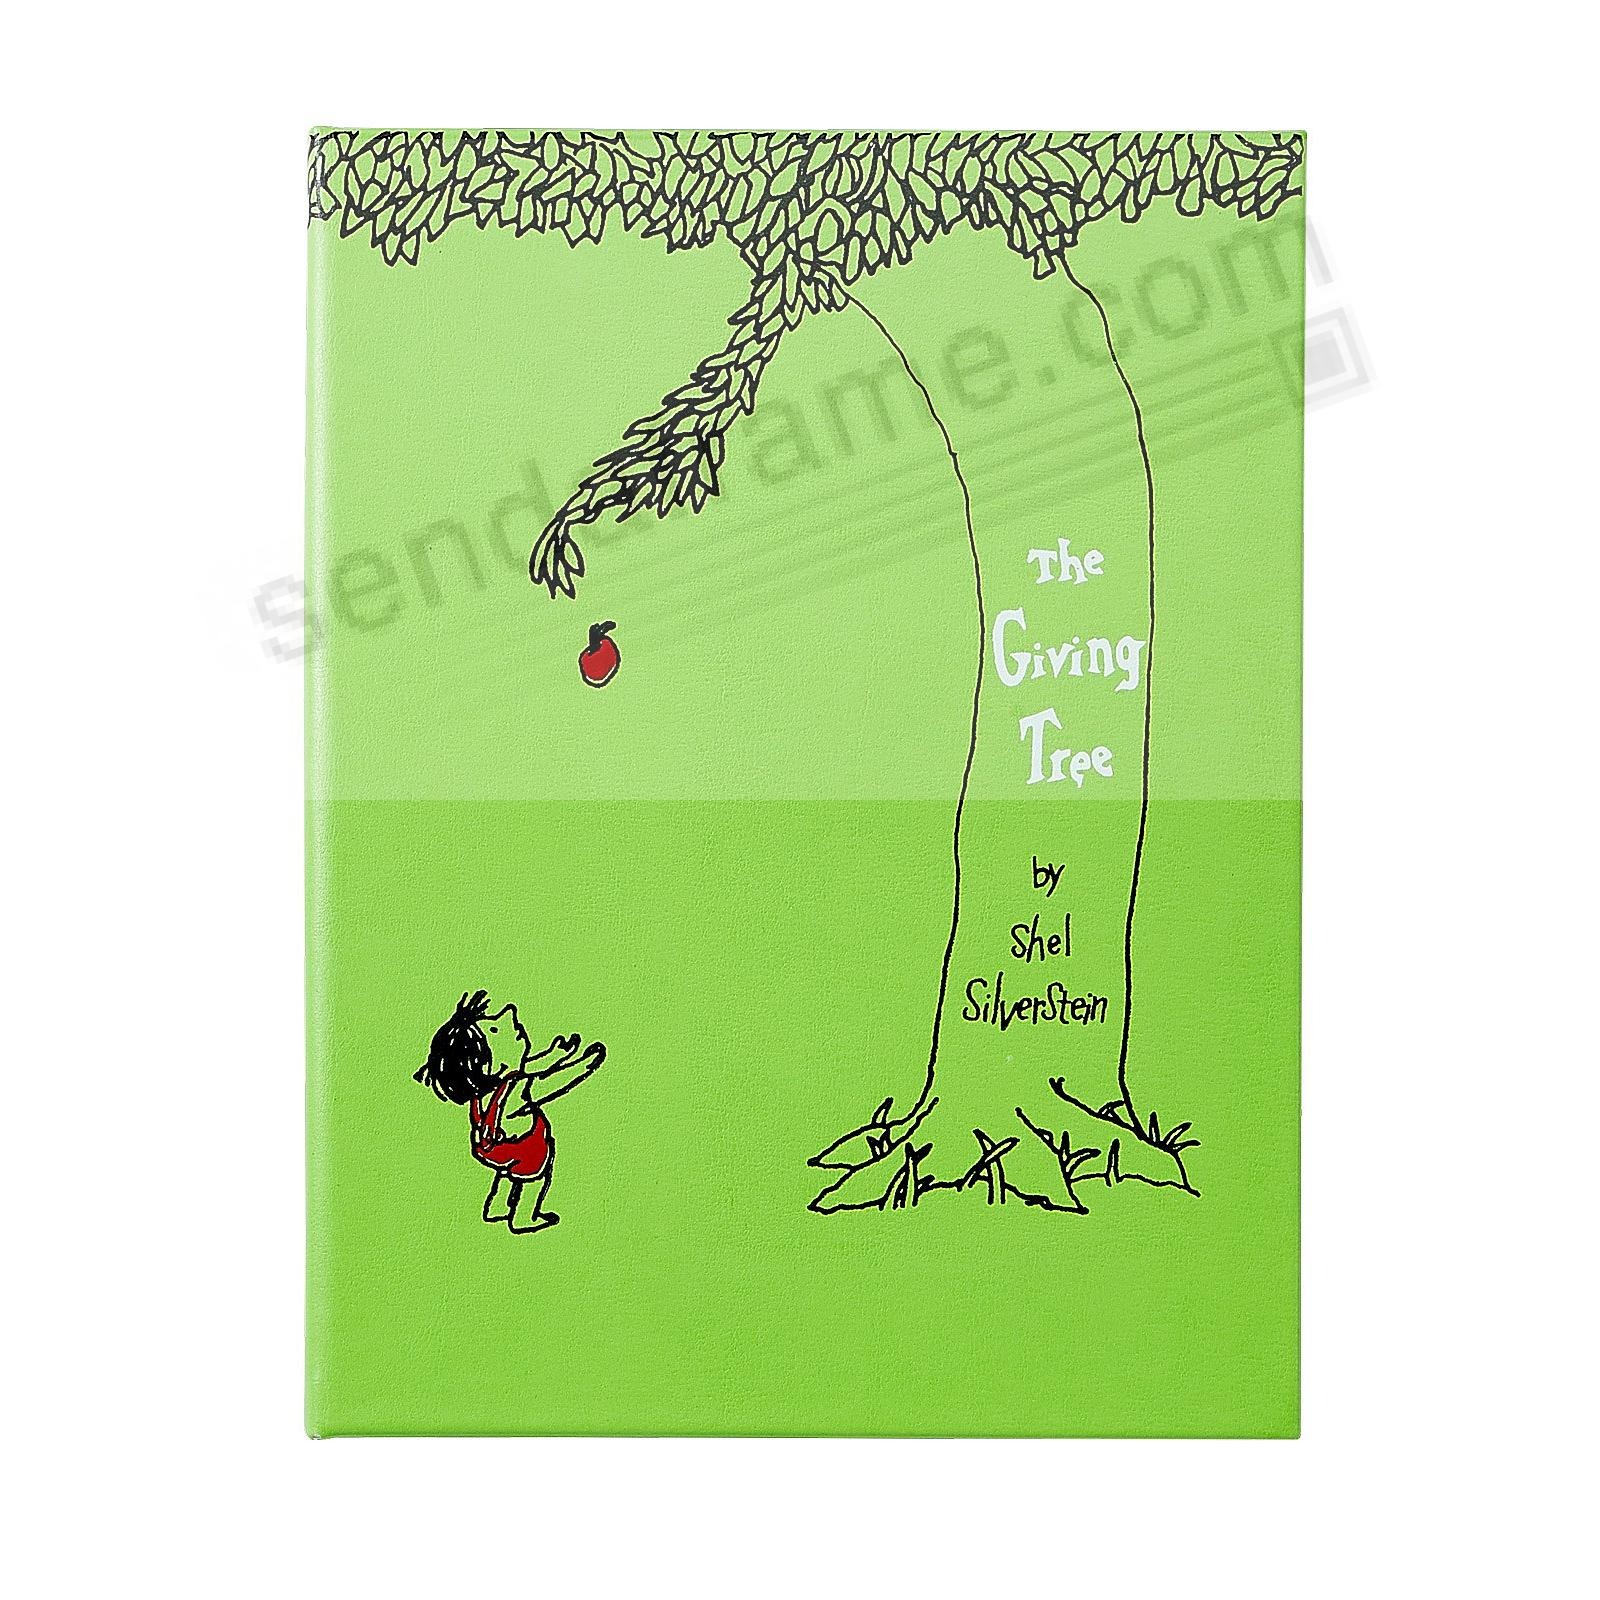 THE GIVING TREE by Shel Silverstein In Hand-Tooled Bonded Leather